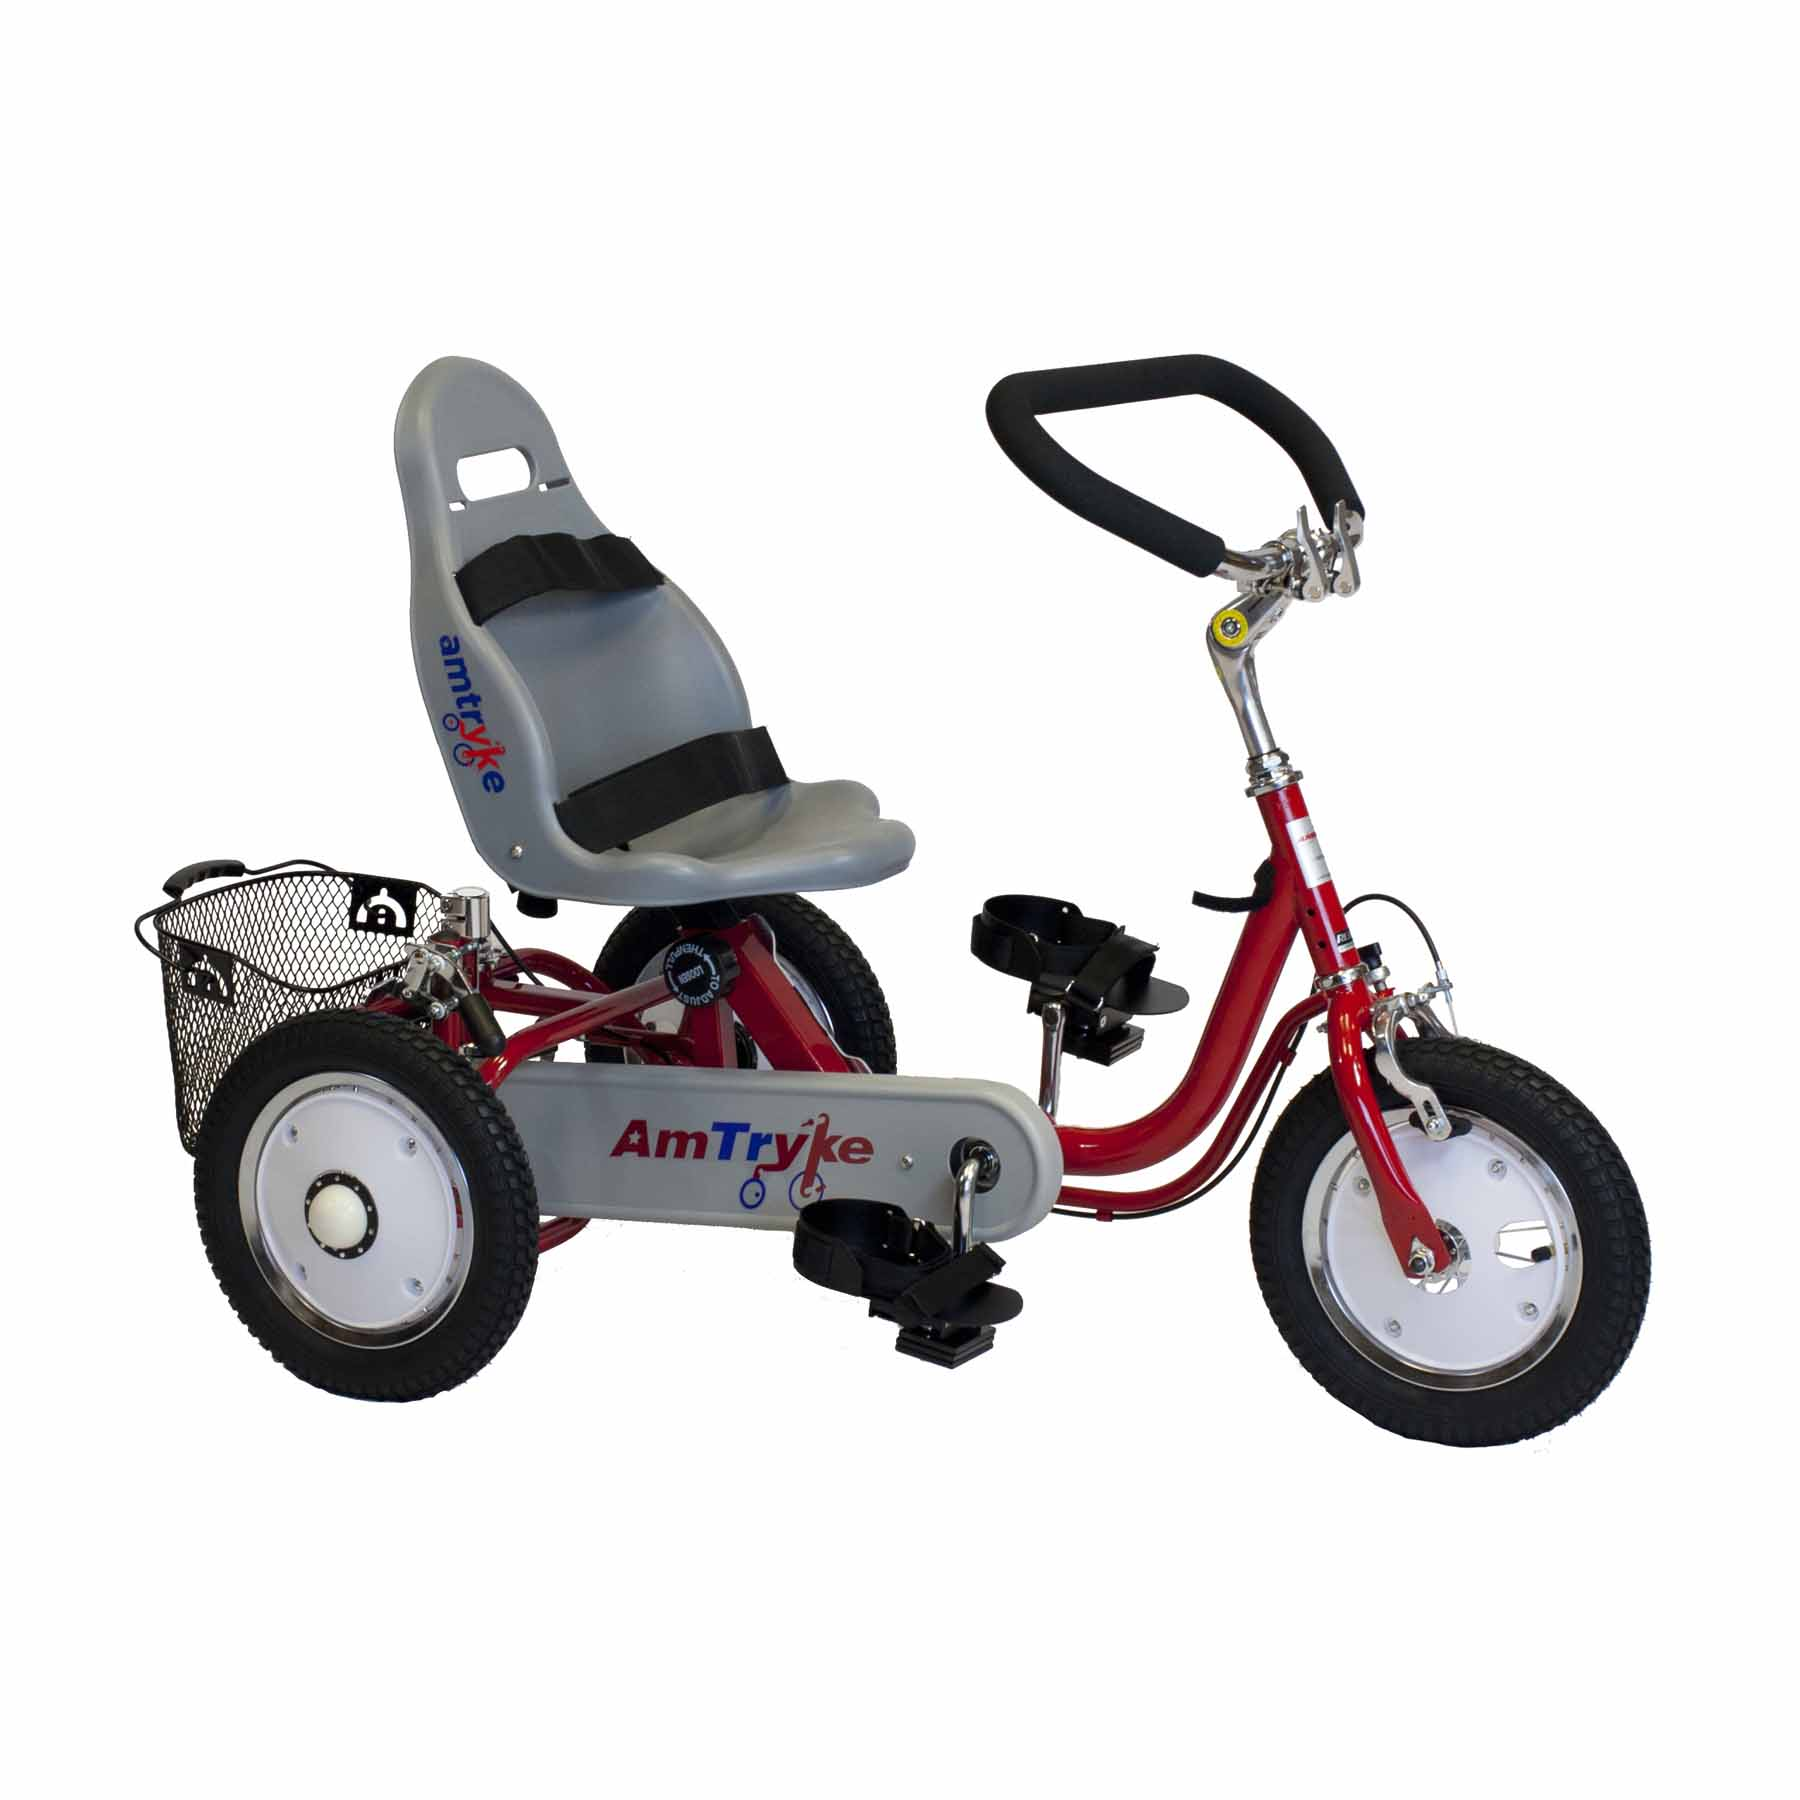 Amtryke ProSeries 1412 tricycle with bucket seat